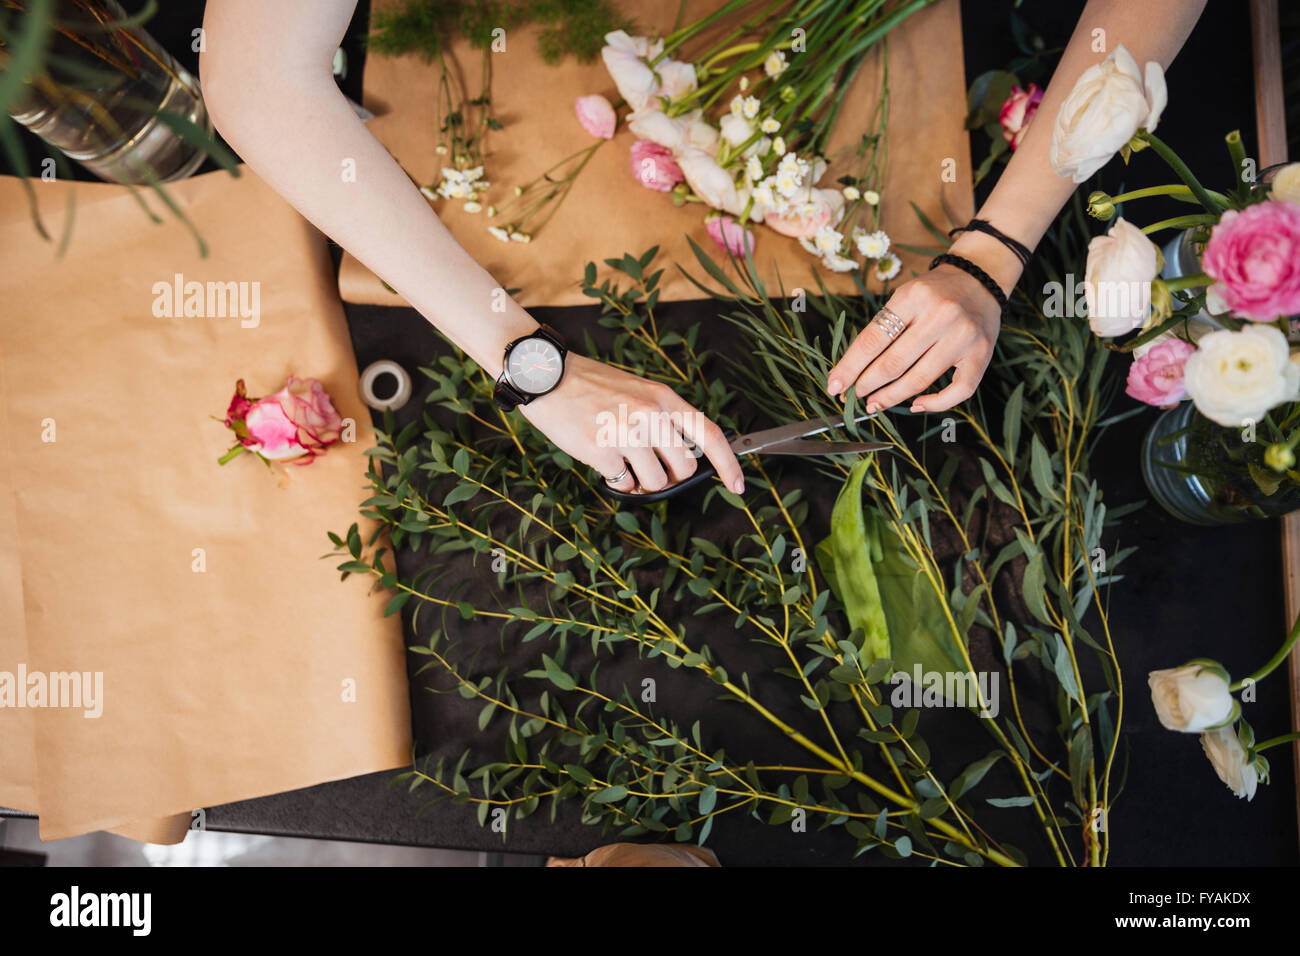 Top view of hands of young woman florist cutting flowers with scissors and designing bouquet on black table - Stock Image